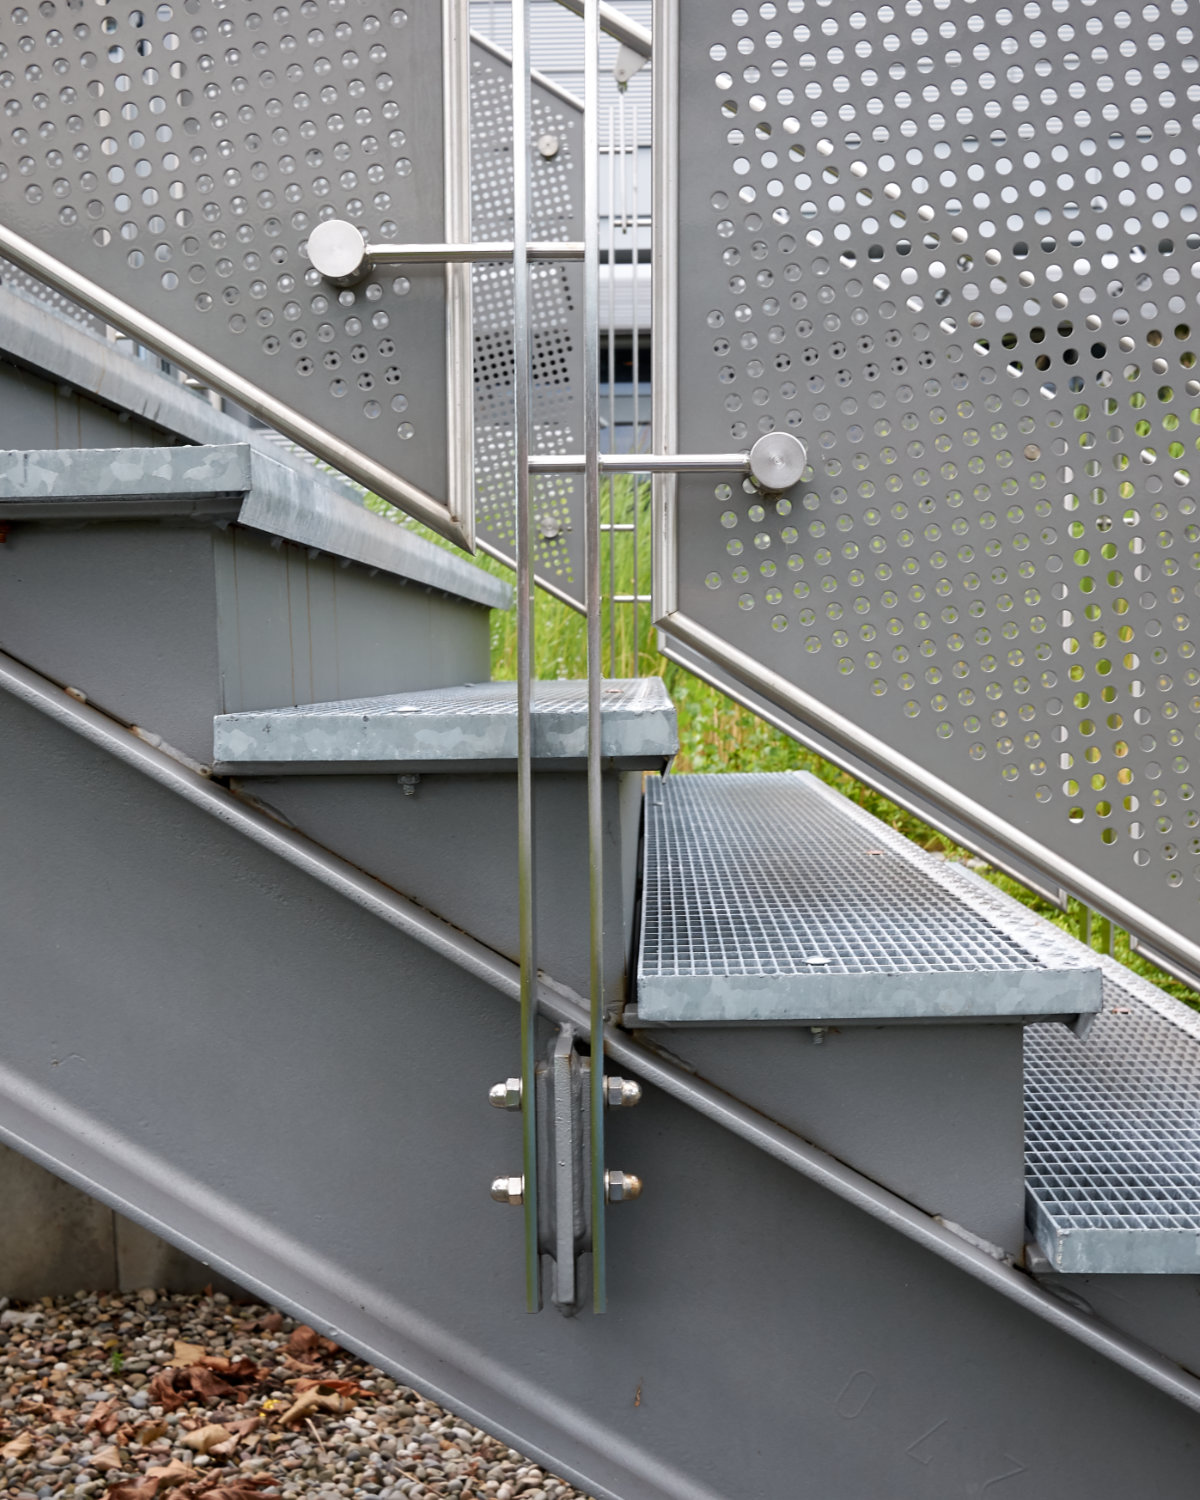 Detail of exterior stair at the Opel Design Center in Russelsheim, Germany